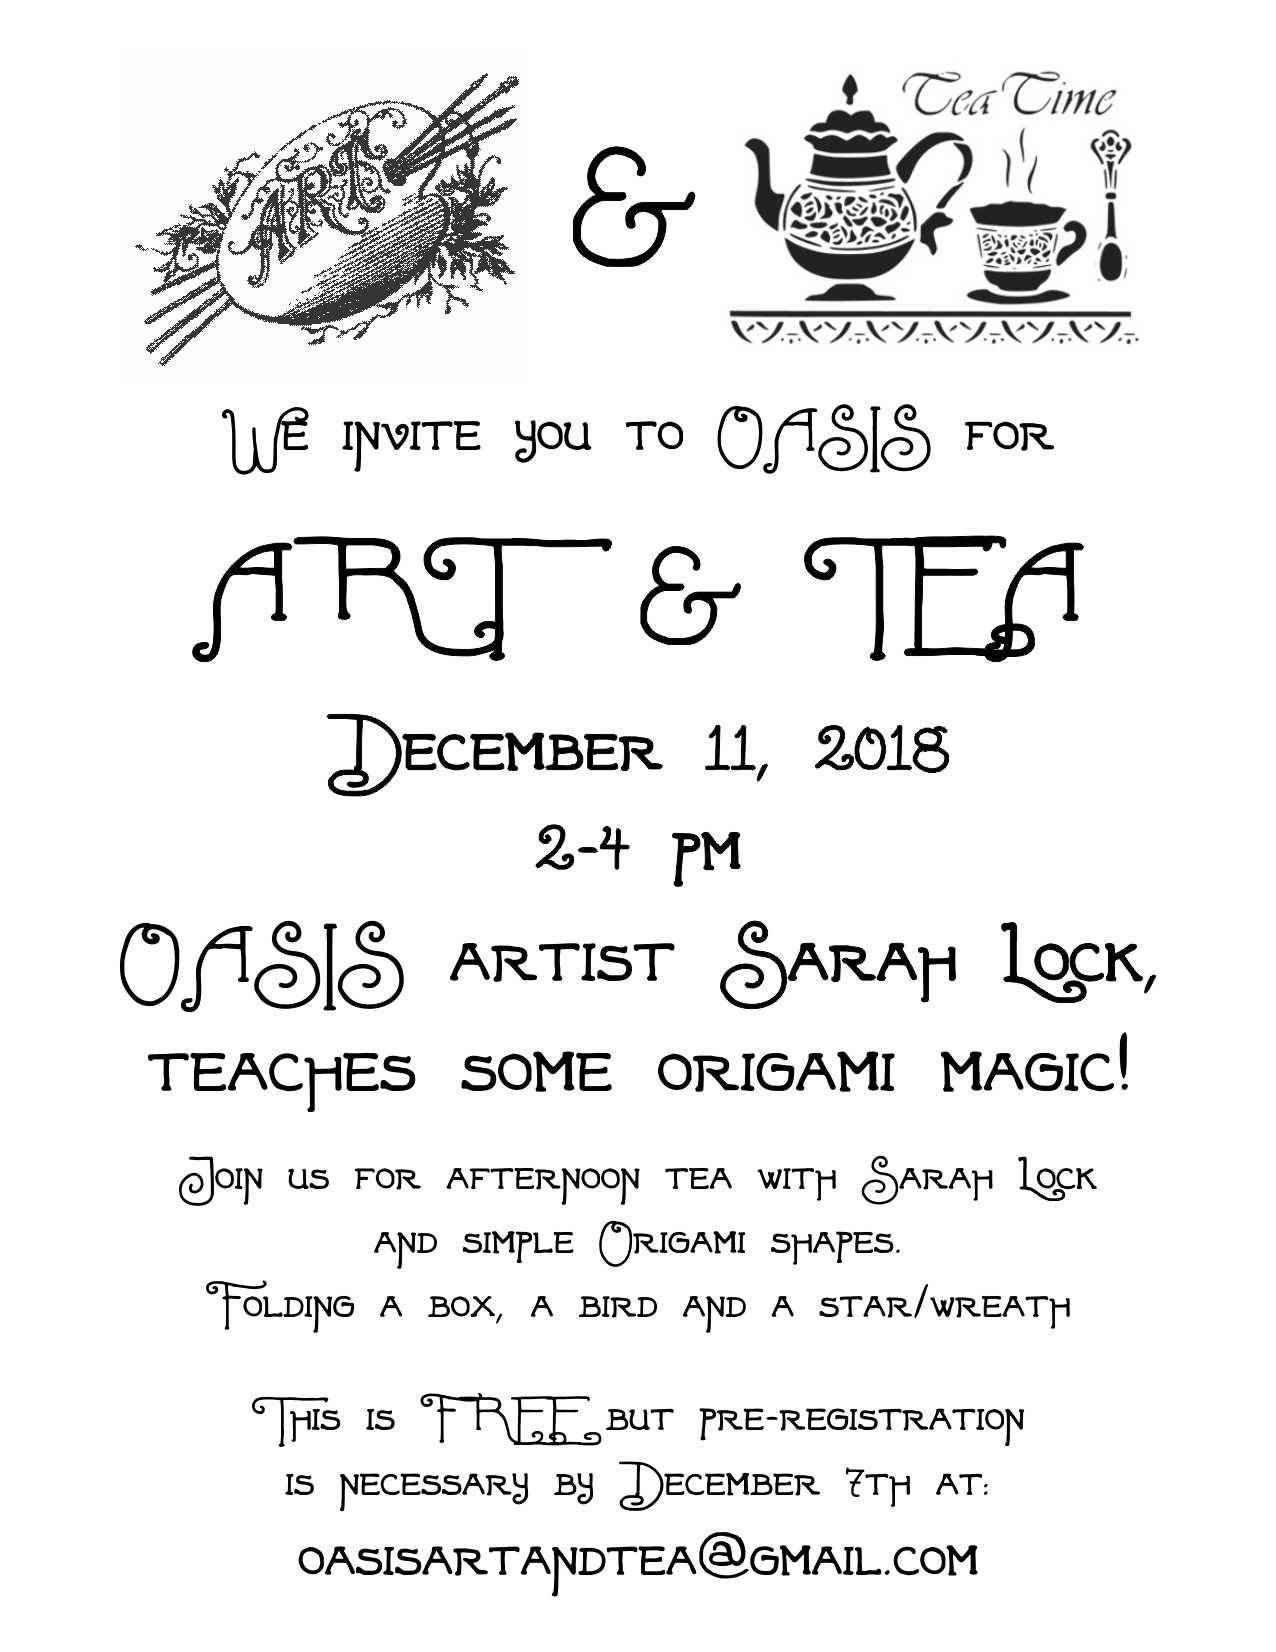 oasis art and tea invite dec 11 2018